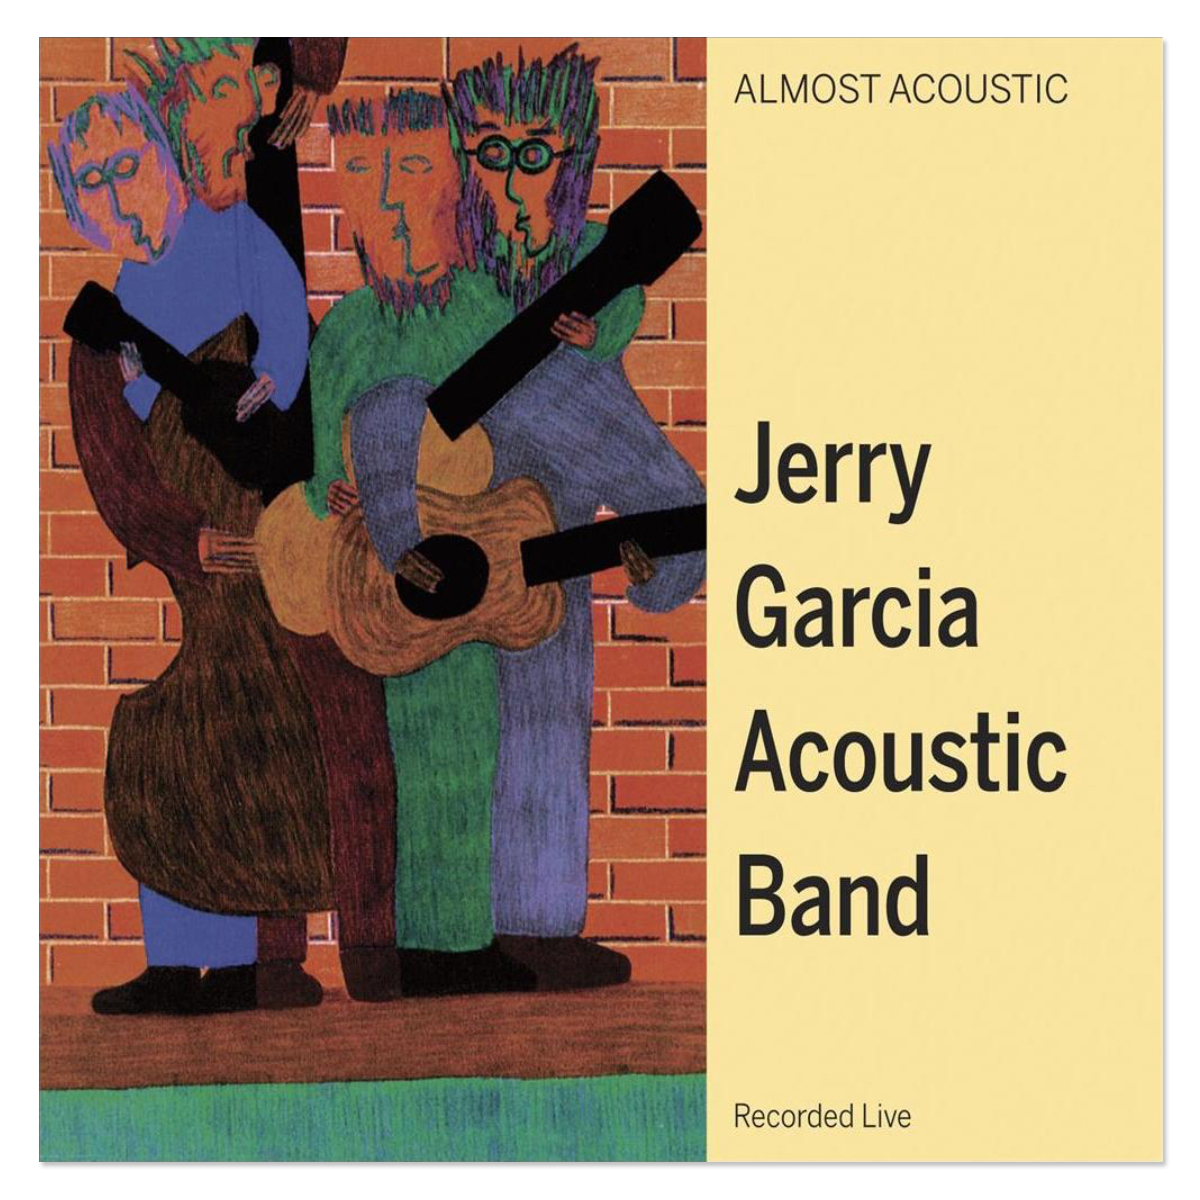 Jerry Garcia Acoustic Band - Almost Acoustic CD